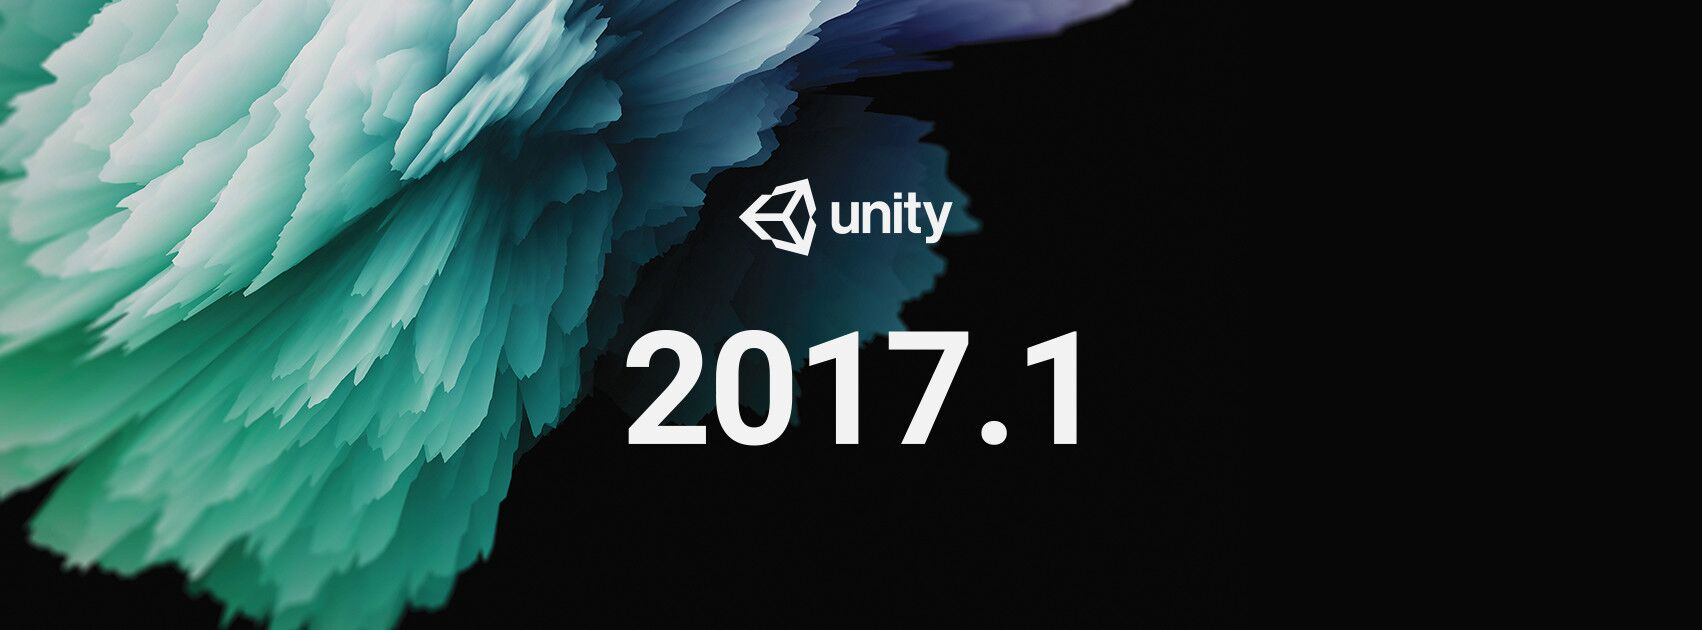 unity-2017.1_launch-fb-cover.jpg